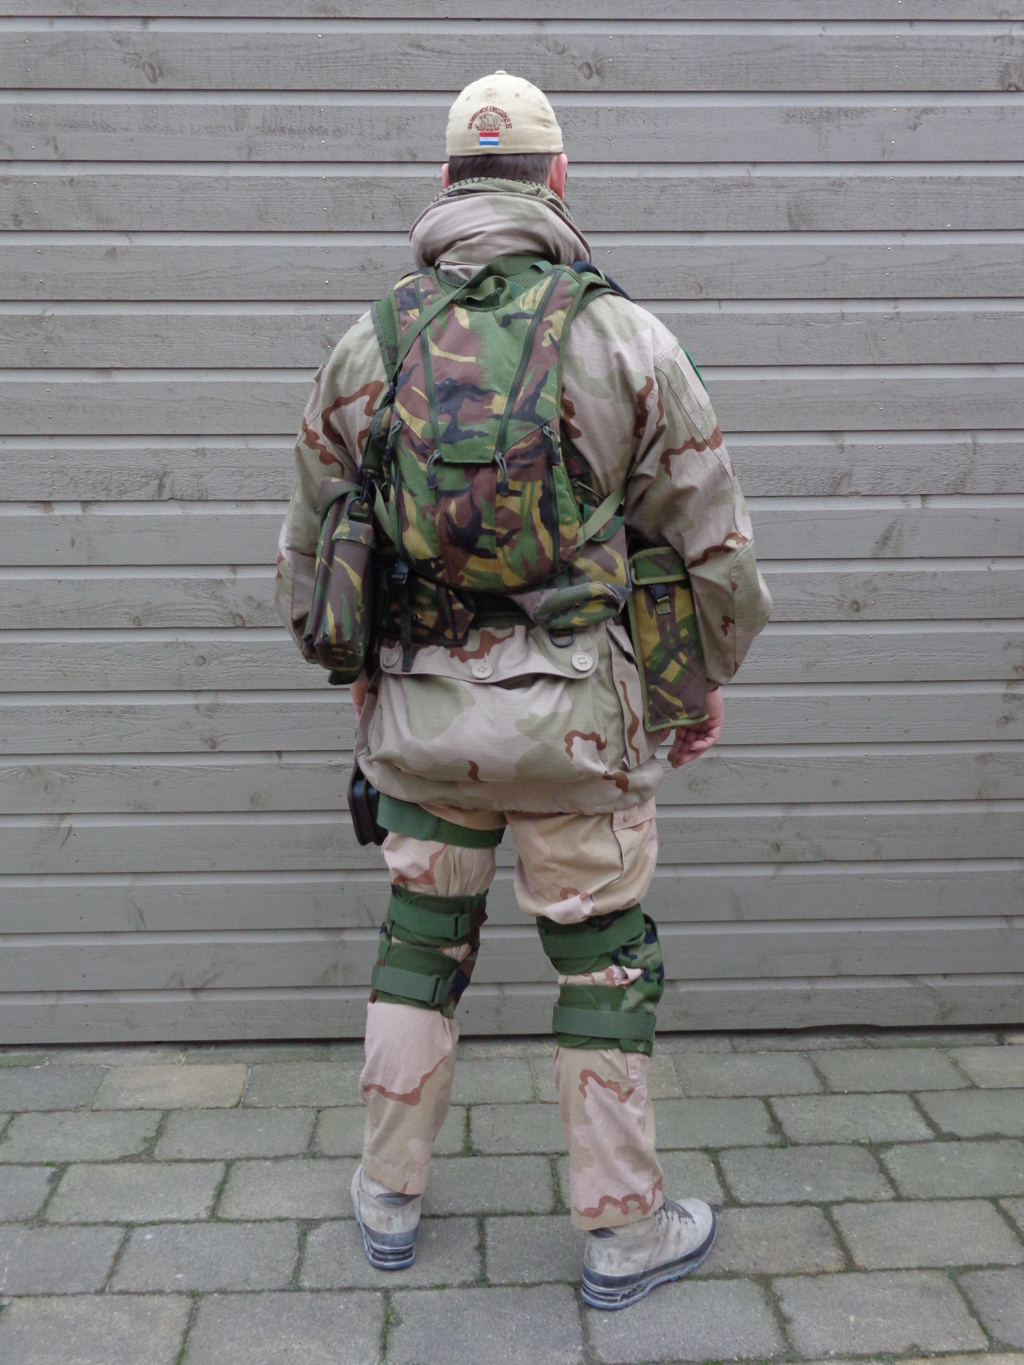 Dutch army loadout displays (cold war era) - Page 3 Dsc06010